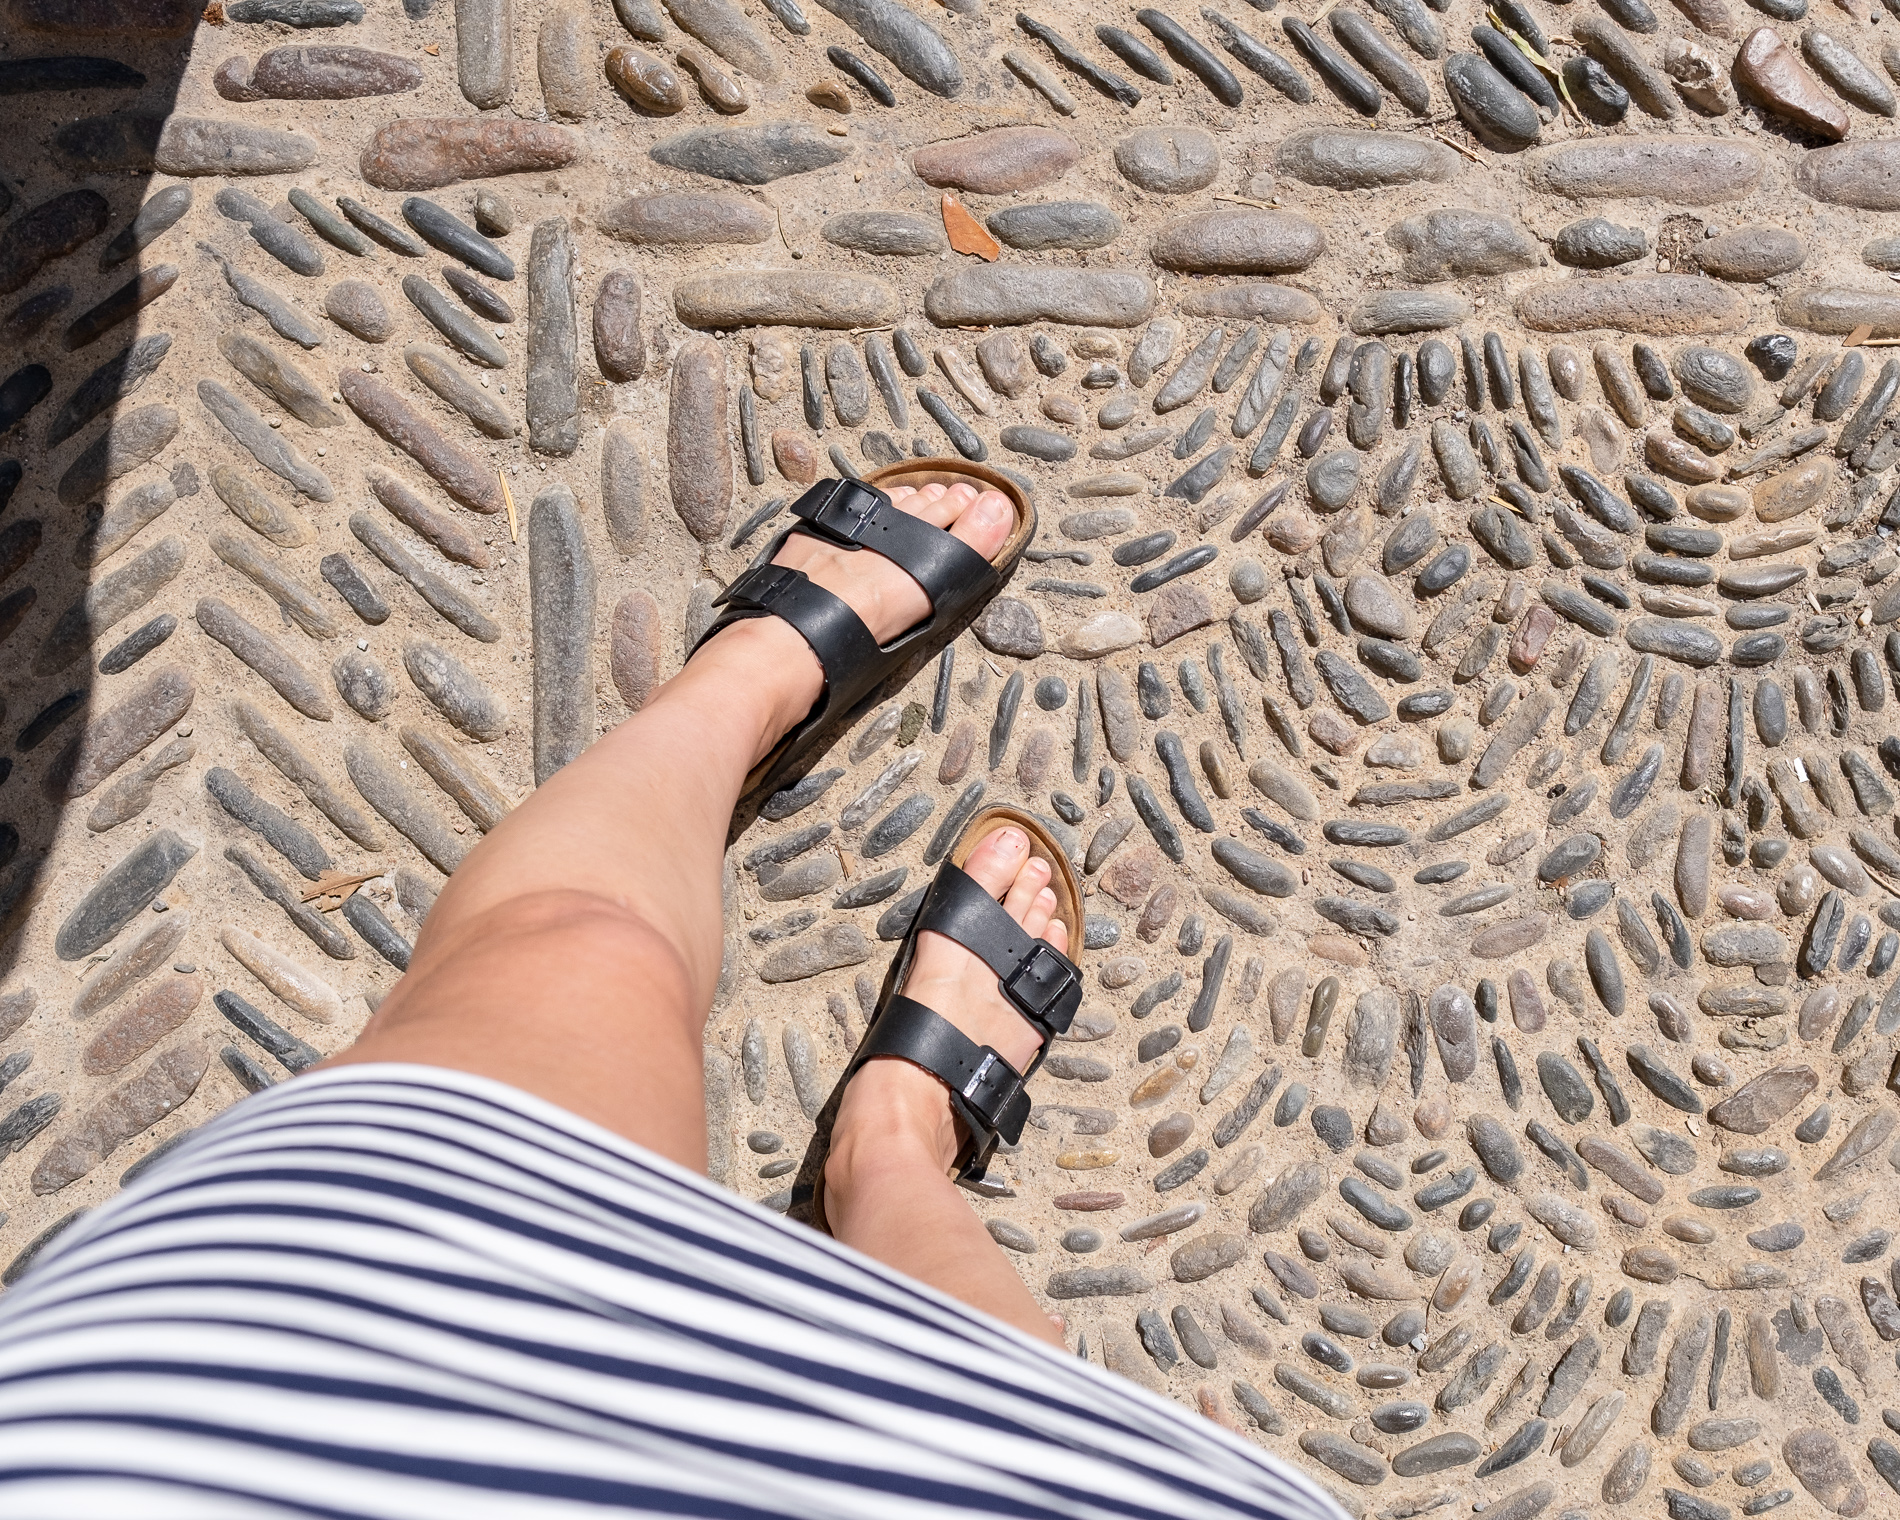 A woman's feet in Birkenstock sandals, on a beautifully cobbled street in Girona, Spain.